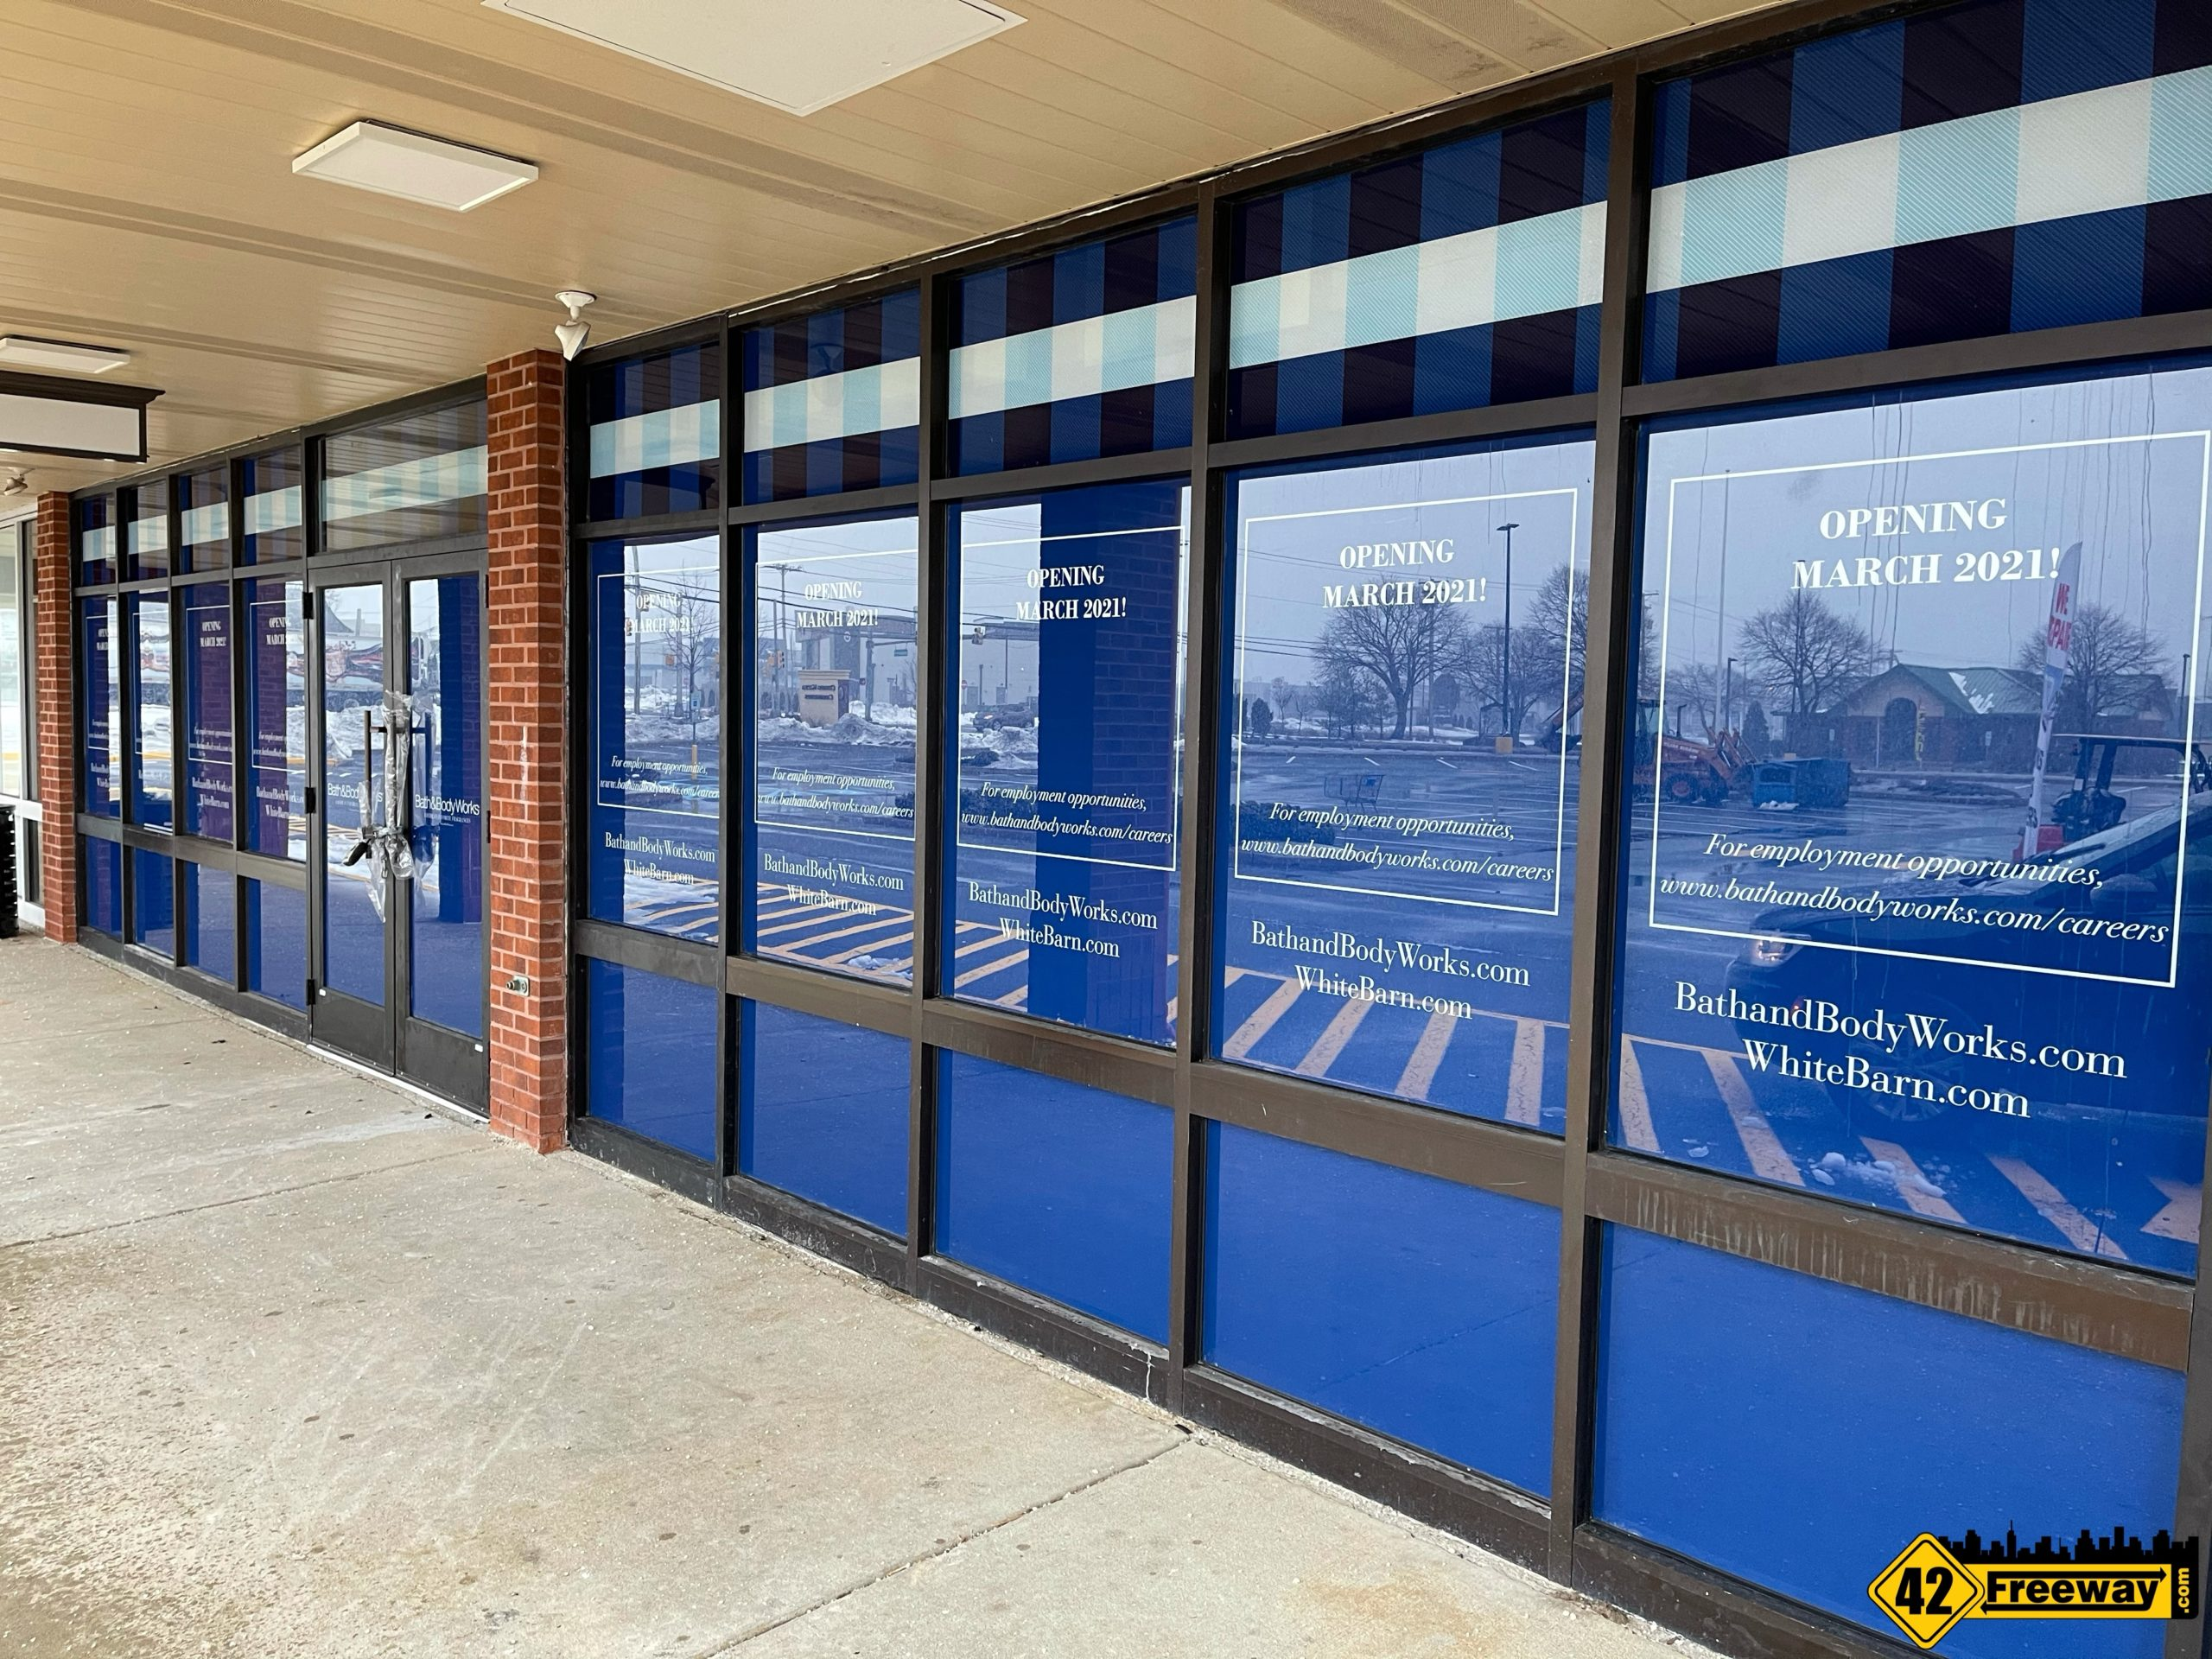 Bath & Body Works Washington Township Opens in MARCH!  Hiring Has Started!